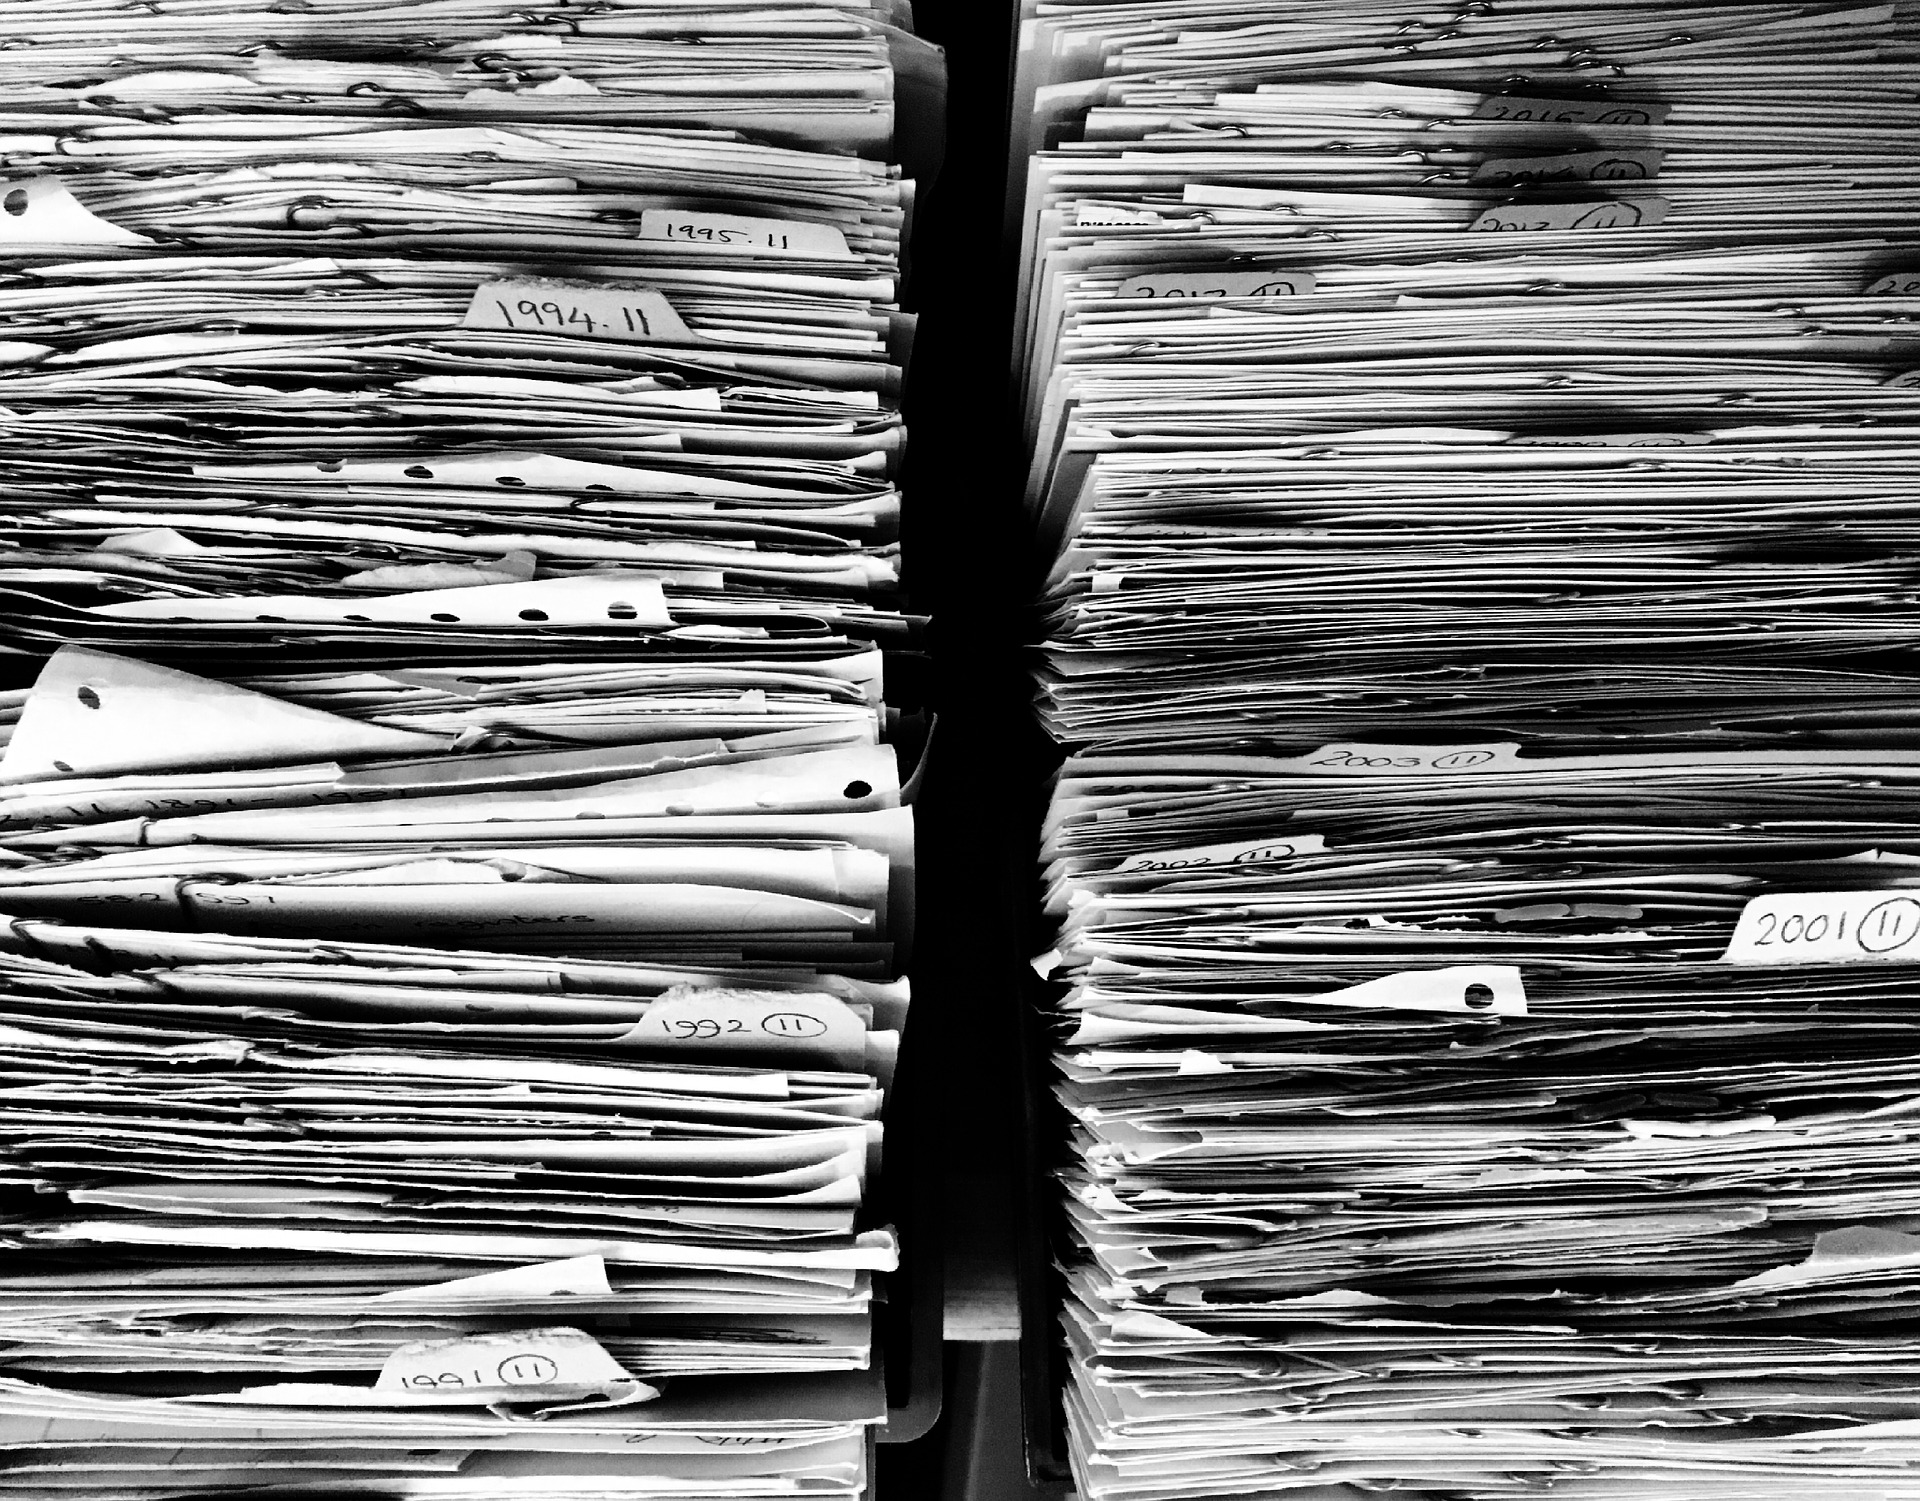 disorganized file stack